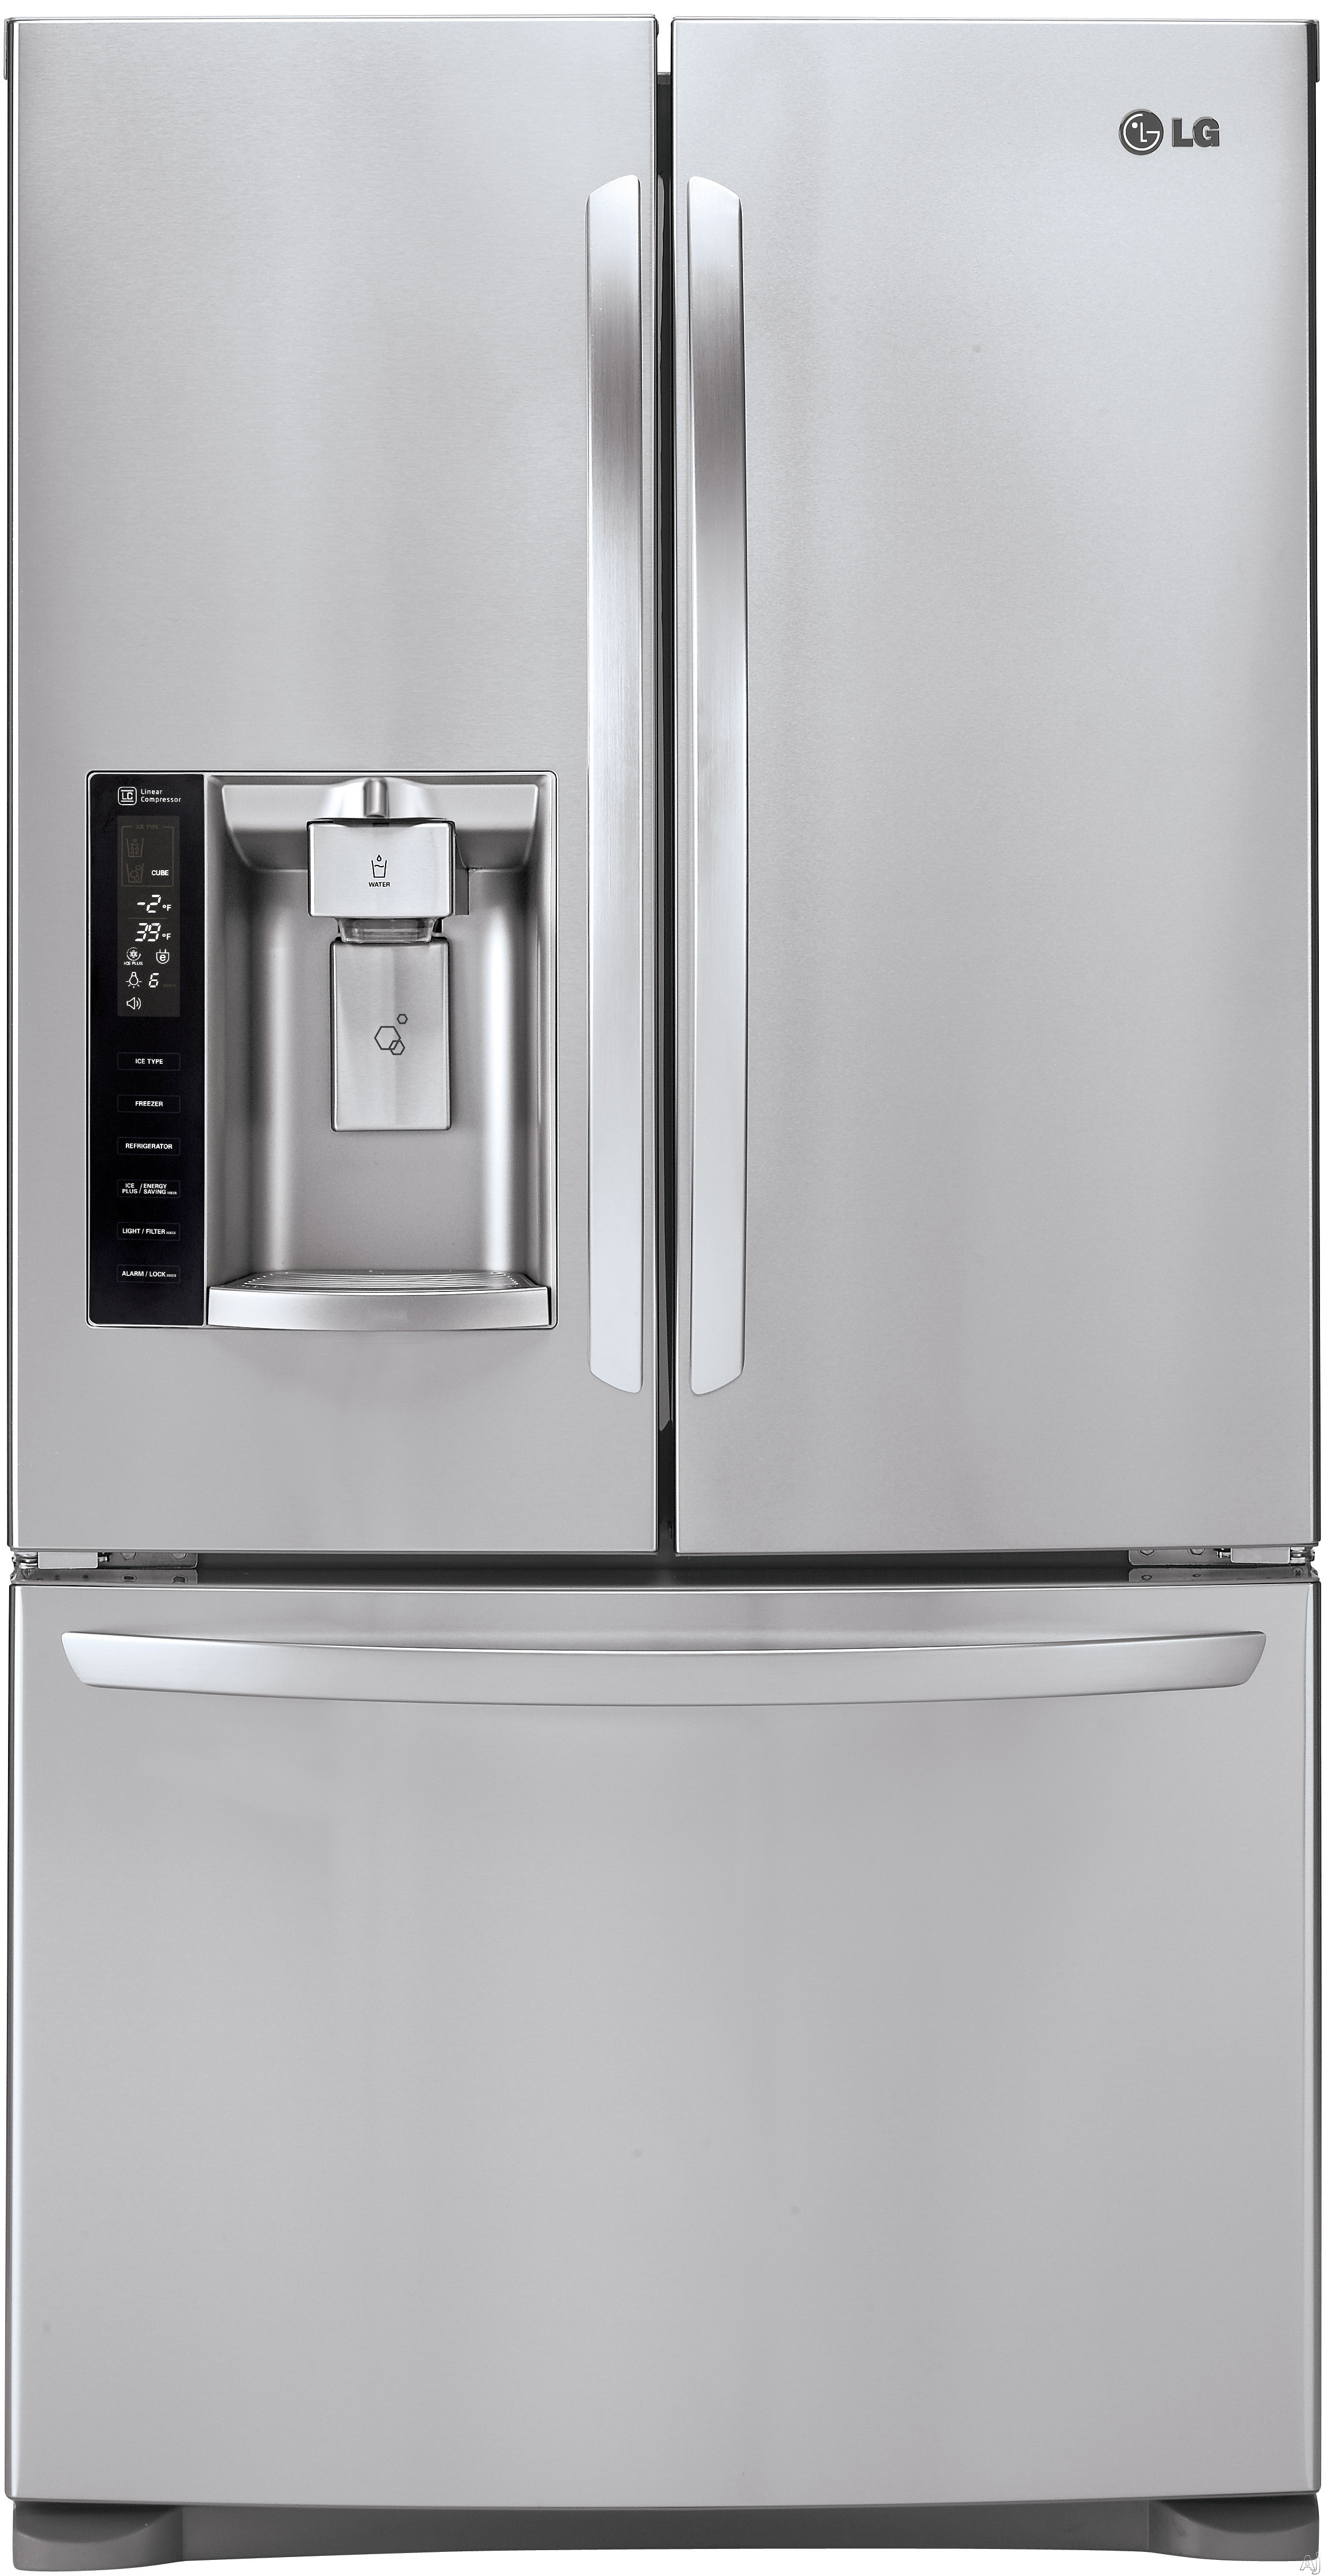 LG LFX28968ST 36 Inch French Door Refrigerator with Linear Compressor, Air and Water Filters, Slim SpacePlus® Ice System, SpillProof™ Glass Shelving, Humidity Controlled Crispers, Gallon Door Storage, ENERGY STAR® and 27.6 cu ft Capacity: Stainless S